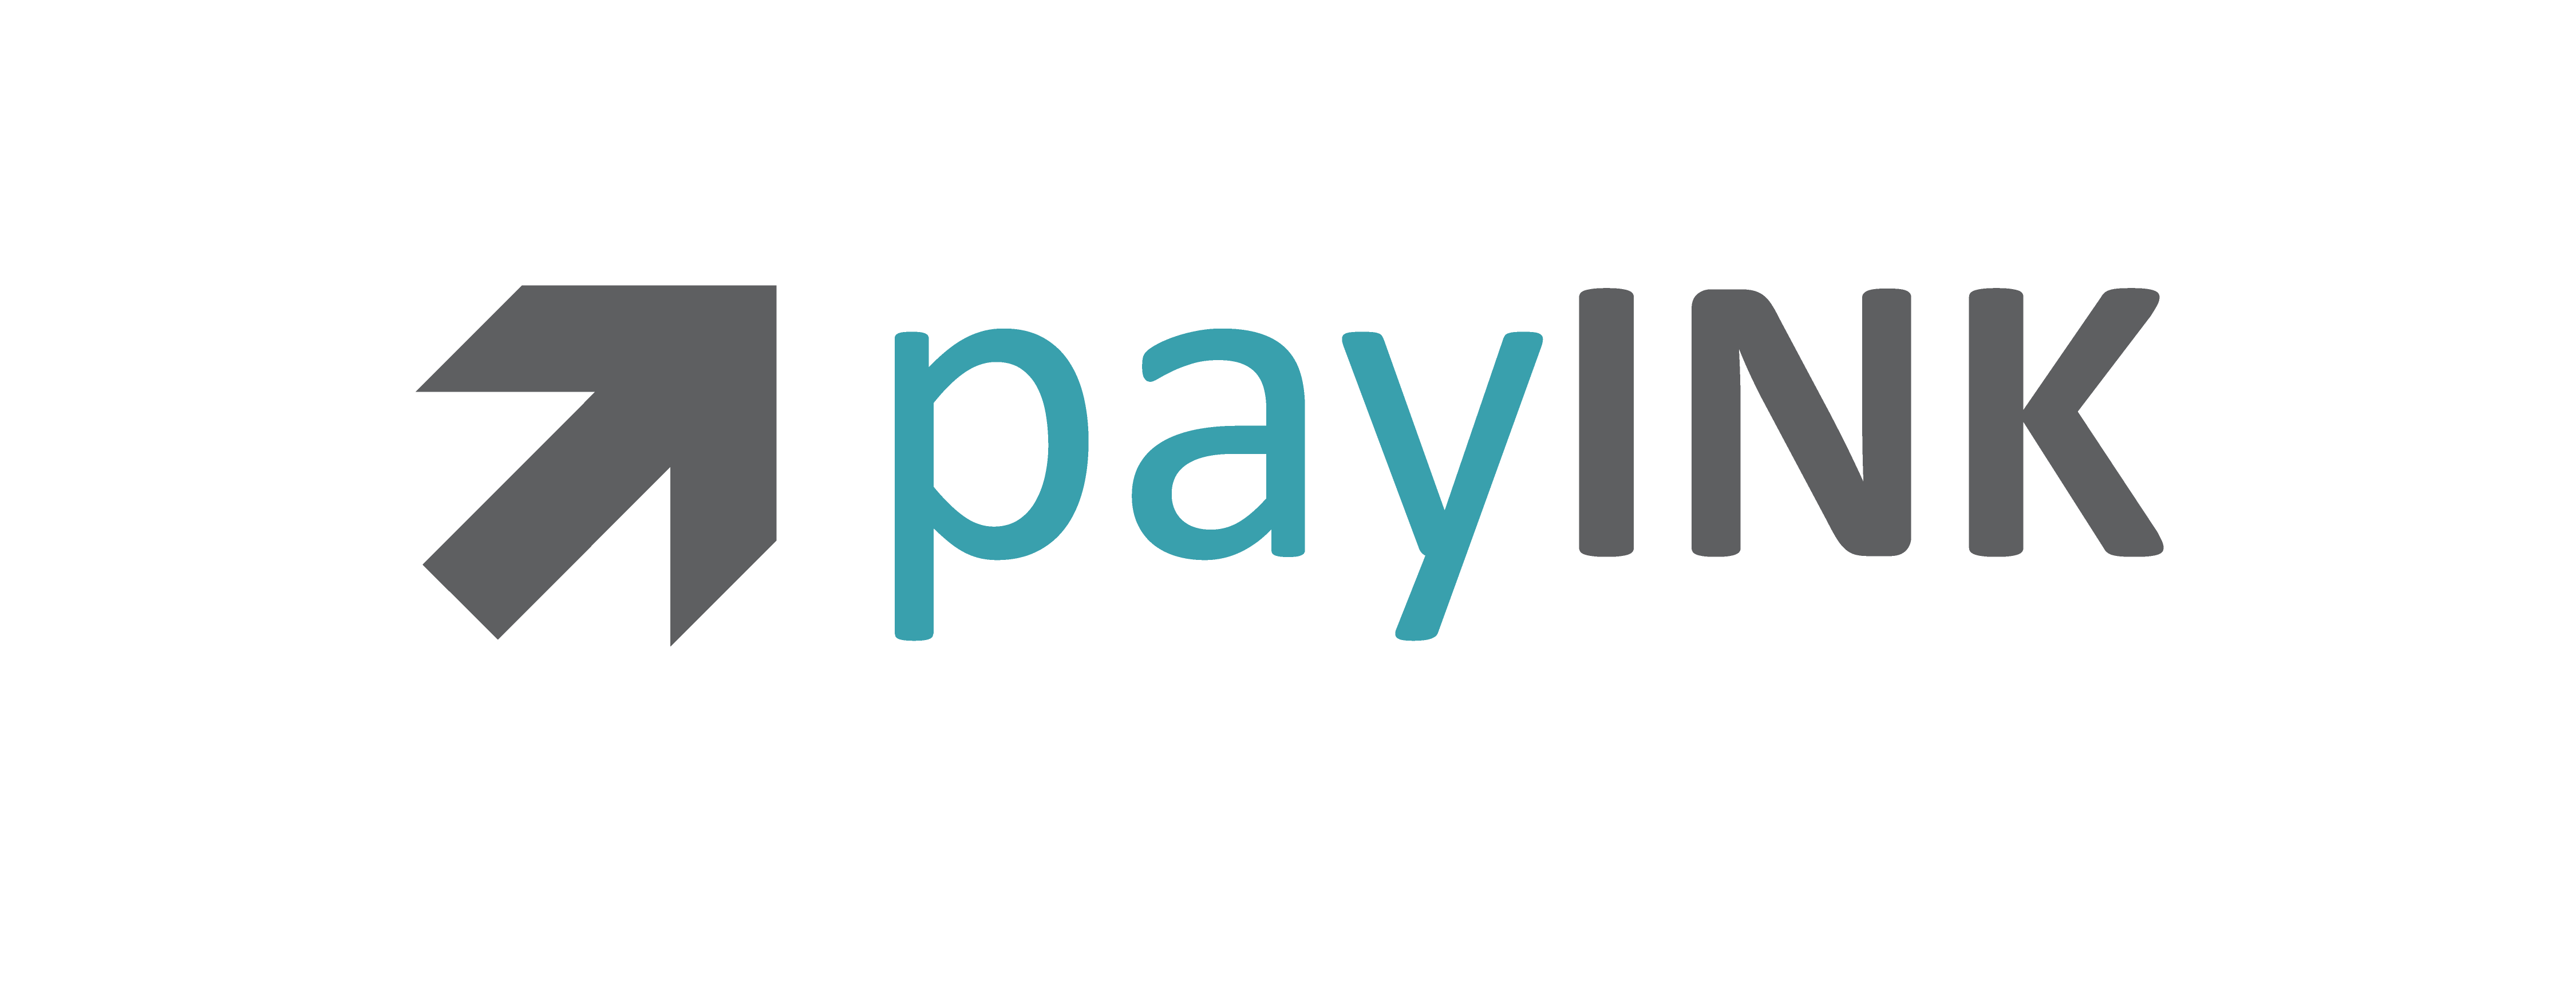 Fintech Payink Strives for Its Next Growth Leap via Senior VP Finance & Growth Hire